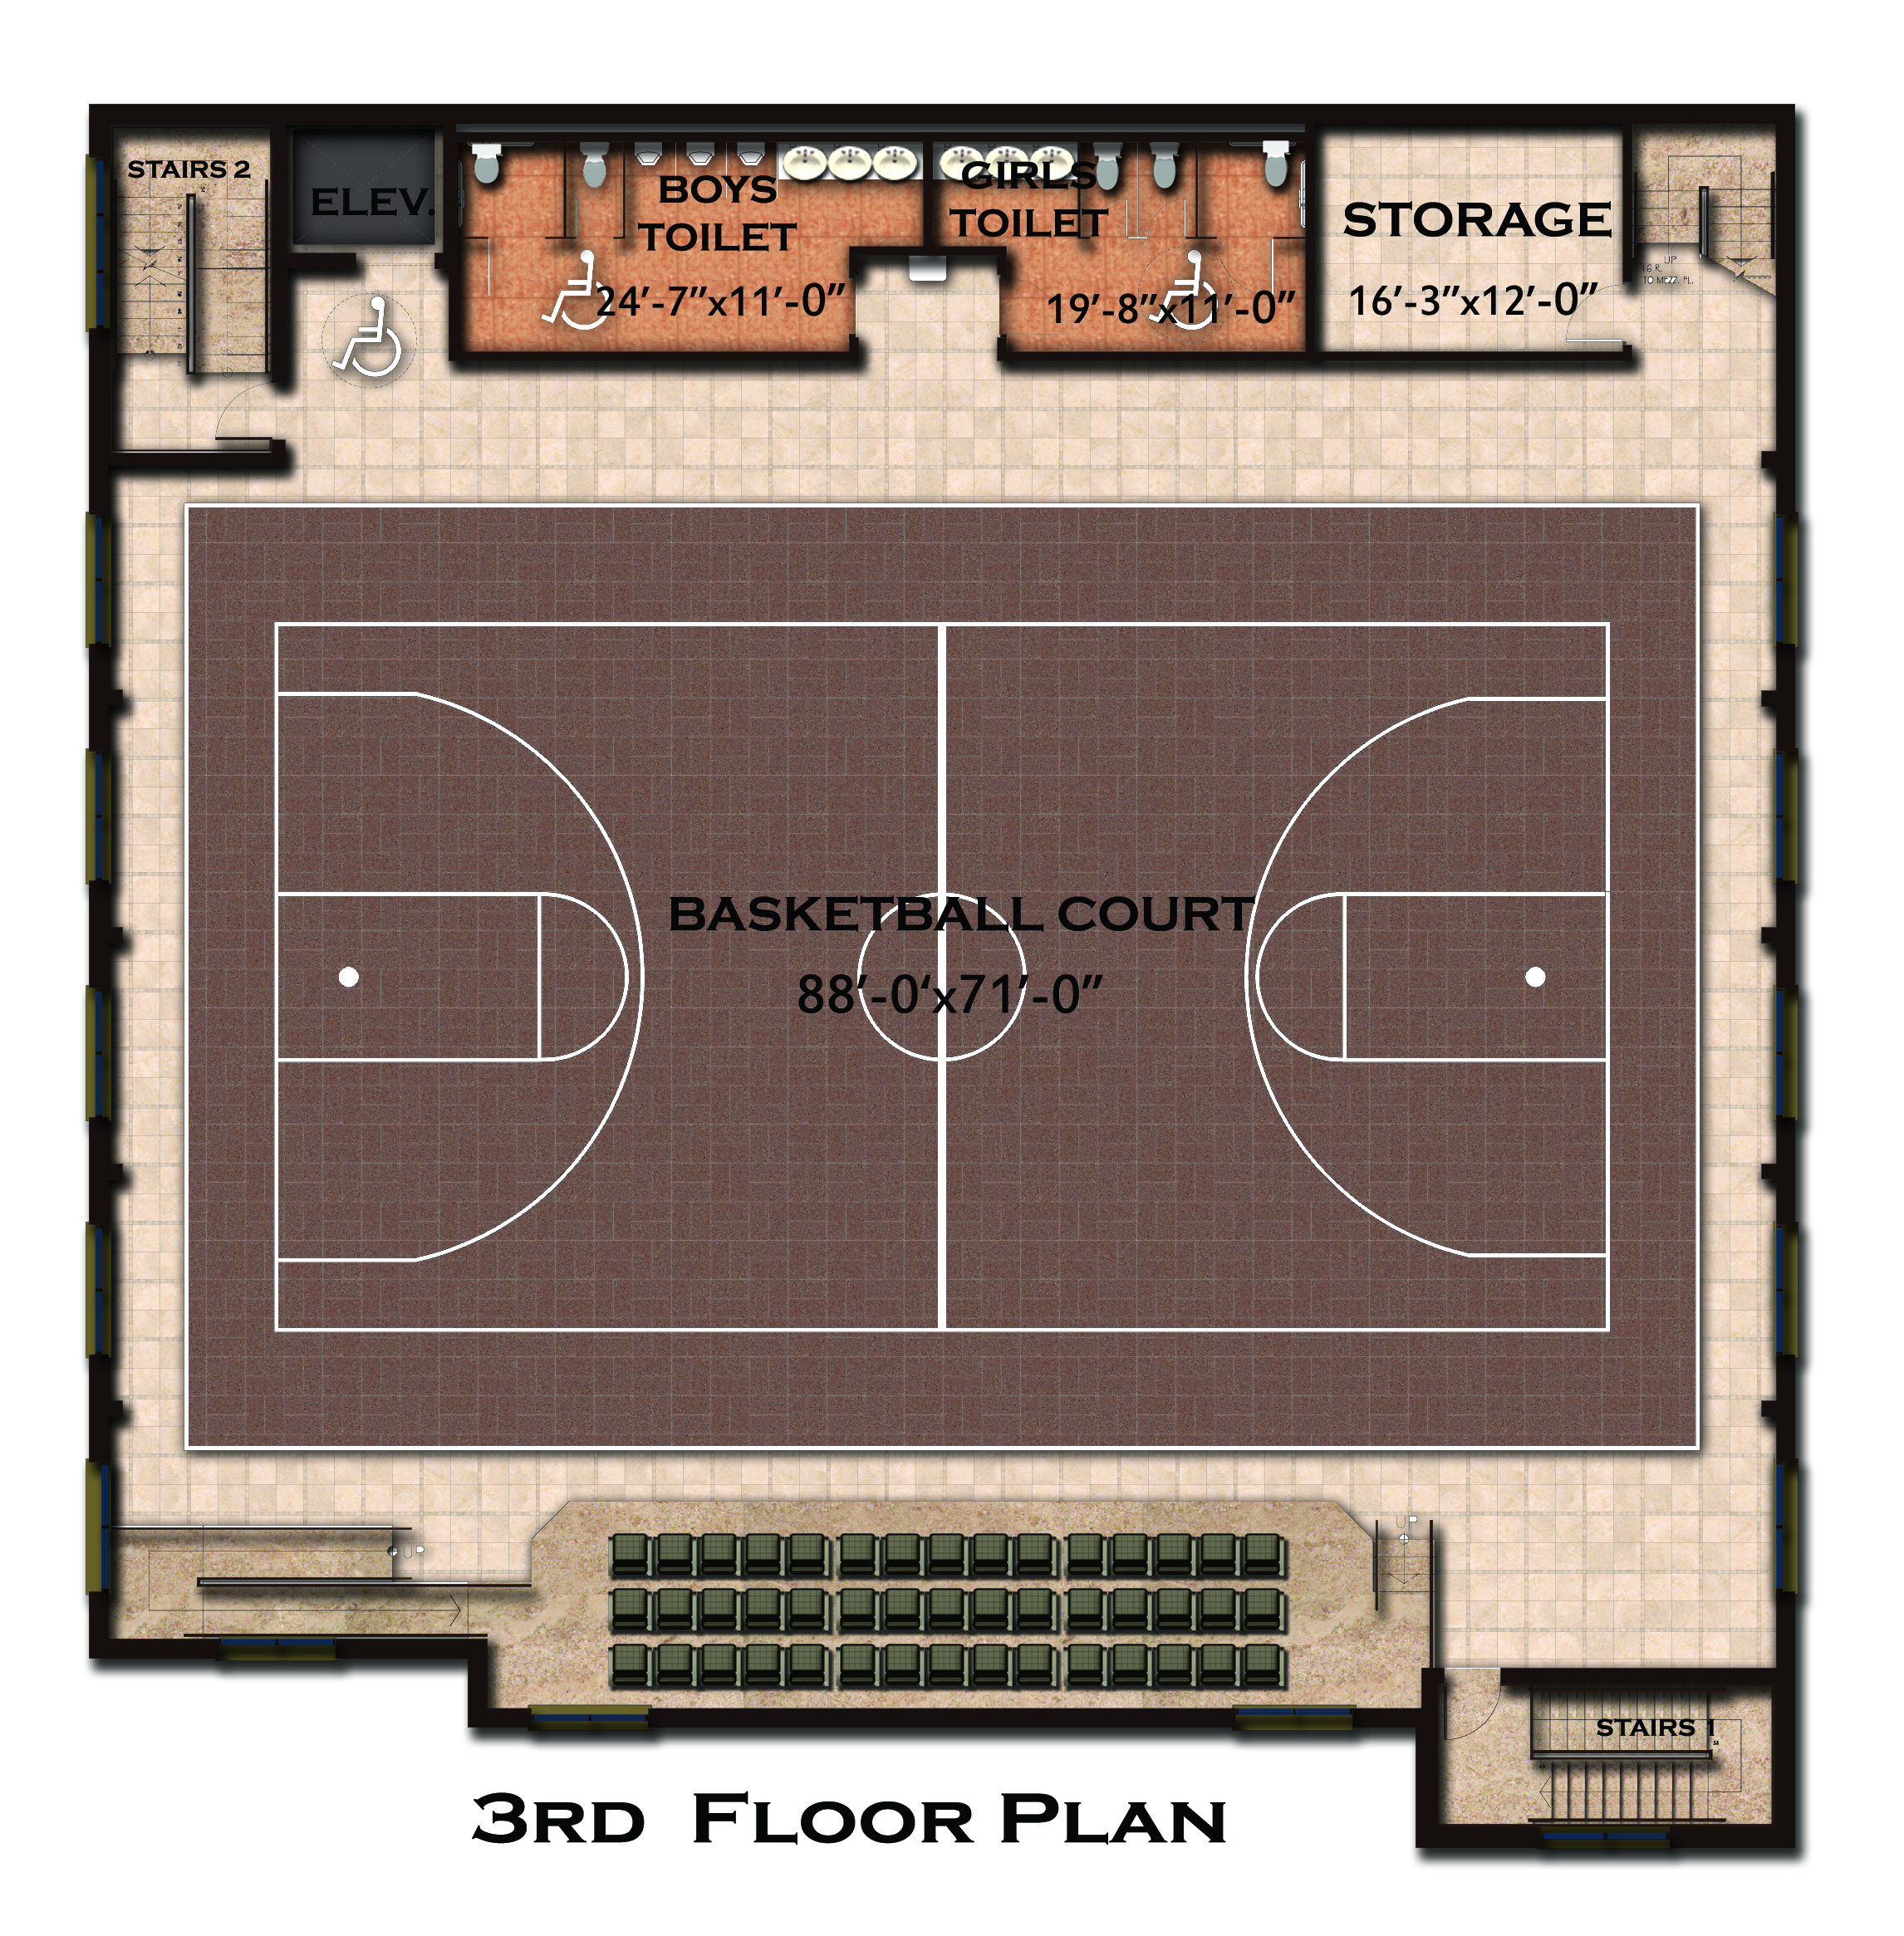 New building floor plan and features coptic orthodox for Basketball gym floor plan